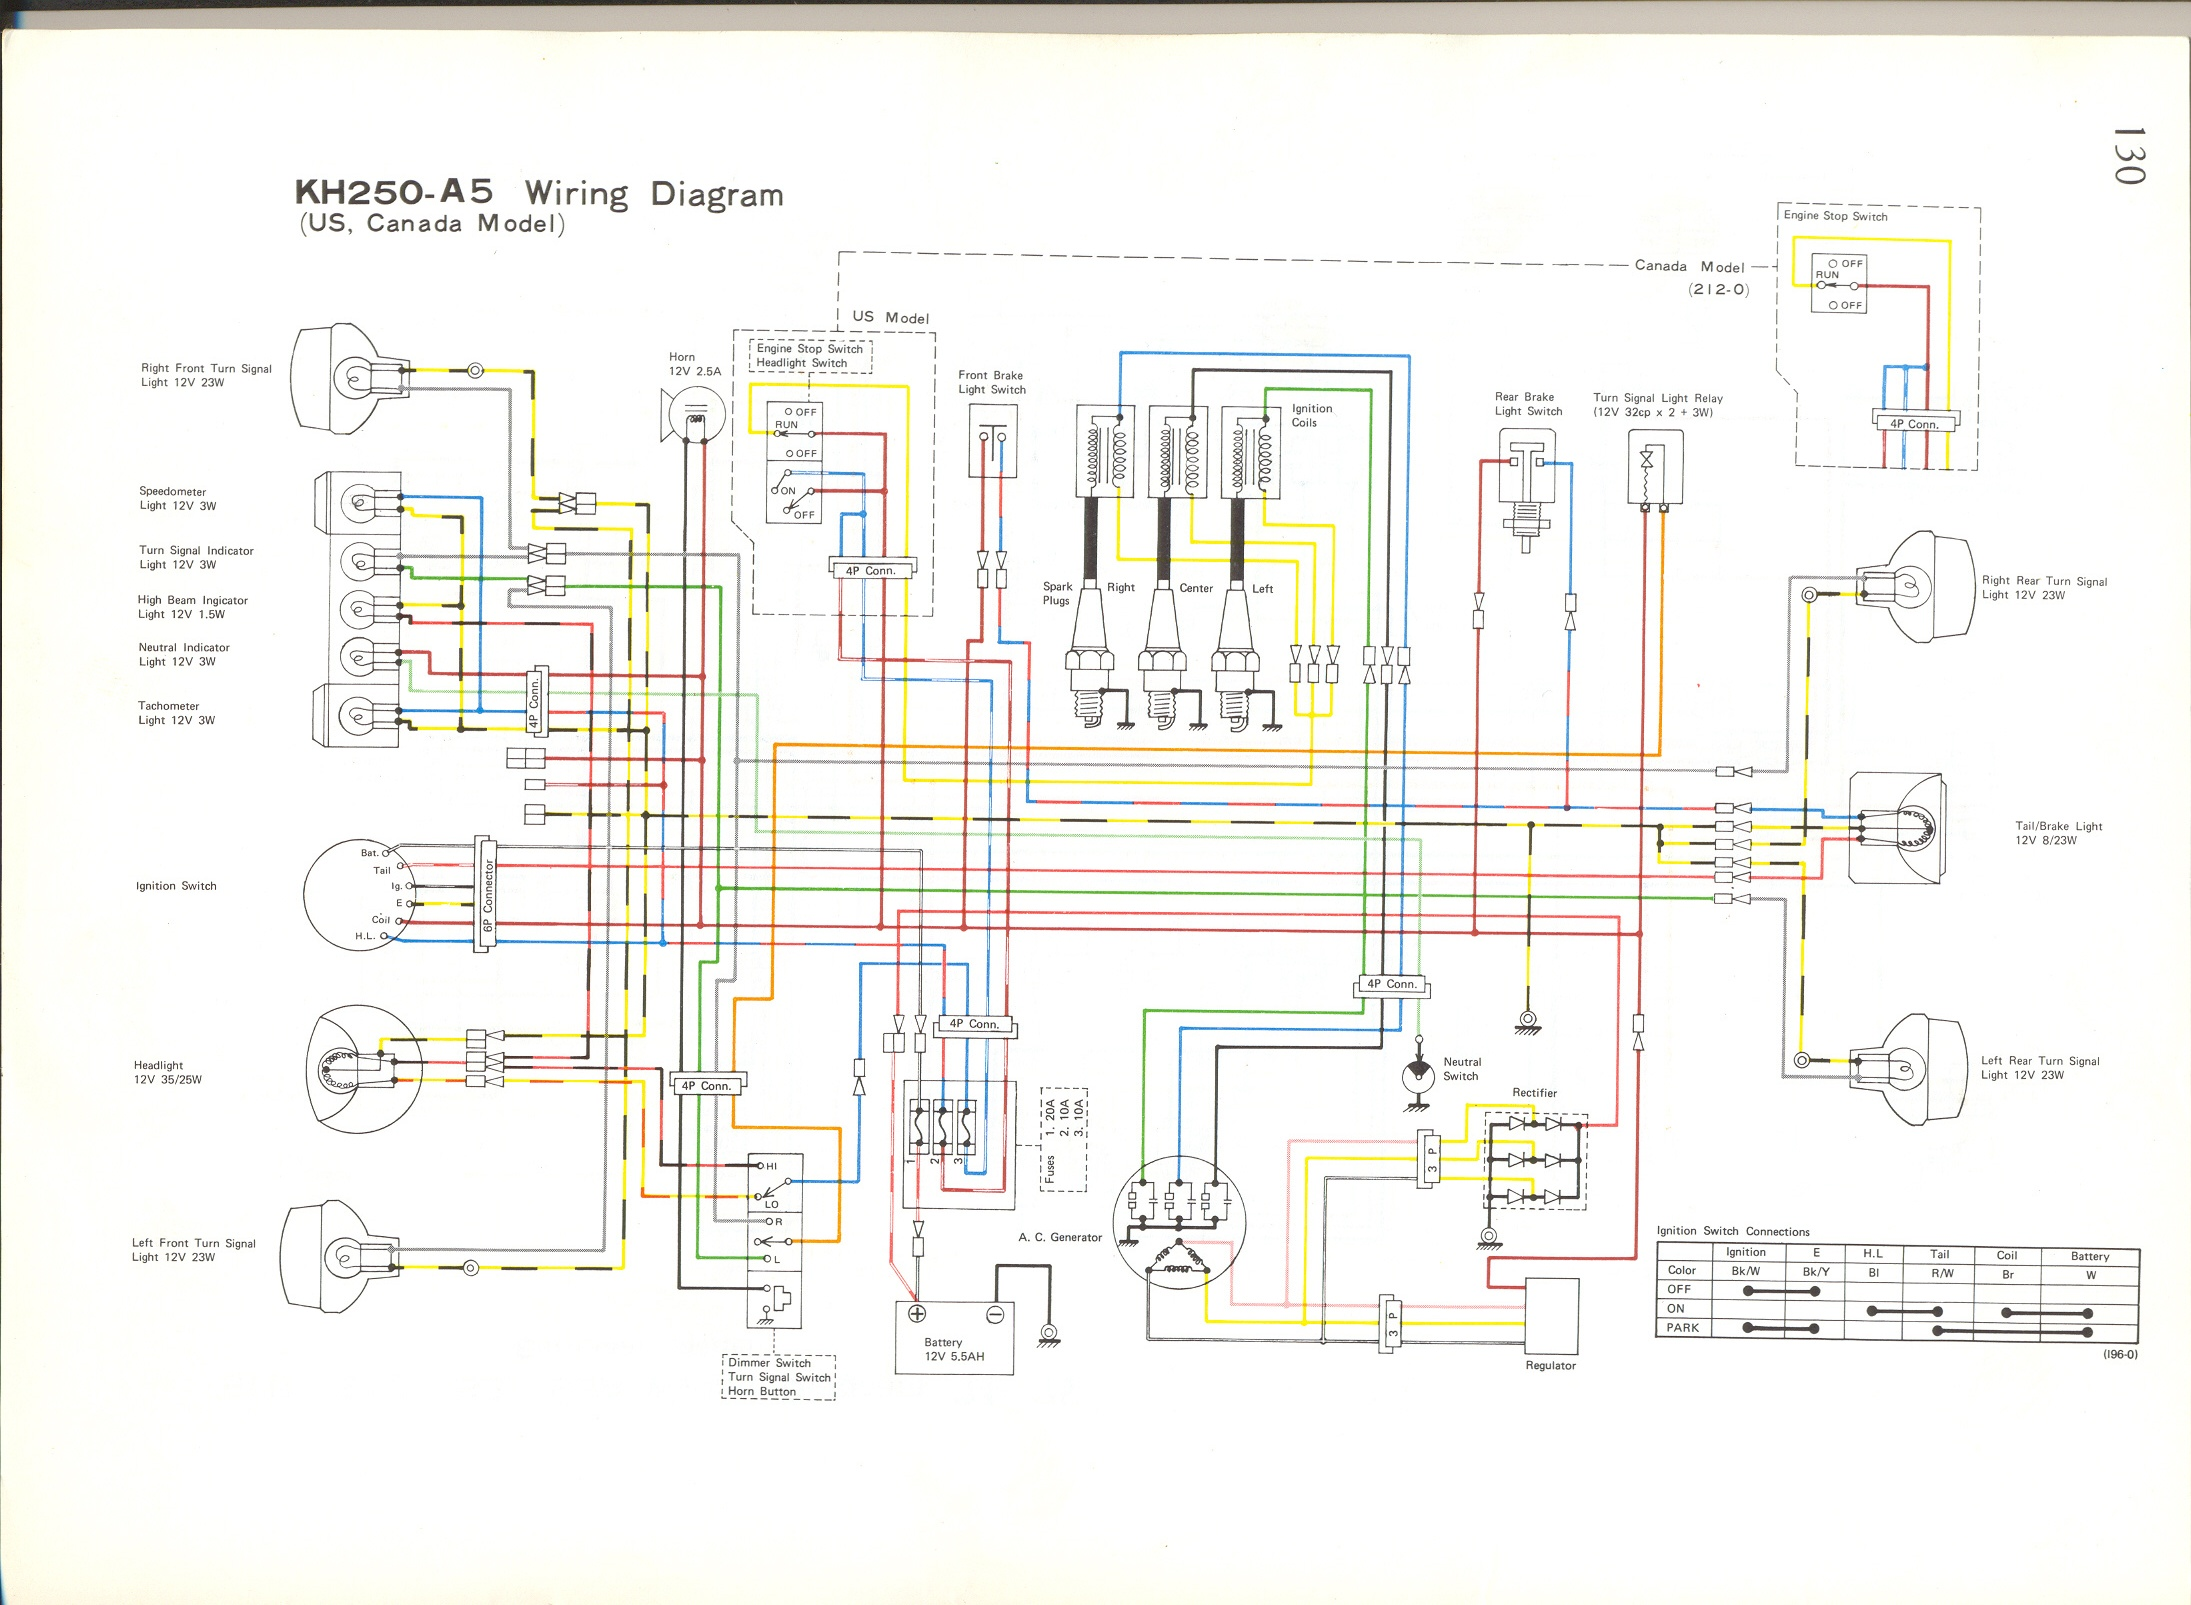 1977 Kawasaki Wiring Diagrams Archive Of Automotive Diagram Kz200 Suzuki Gt380 Schematics Rh Thyl Co Uk Kz1000